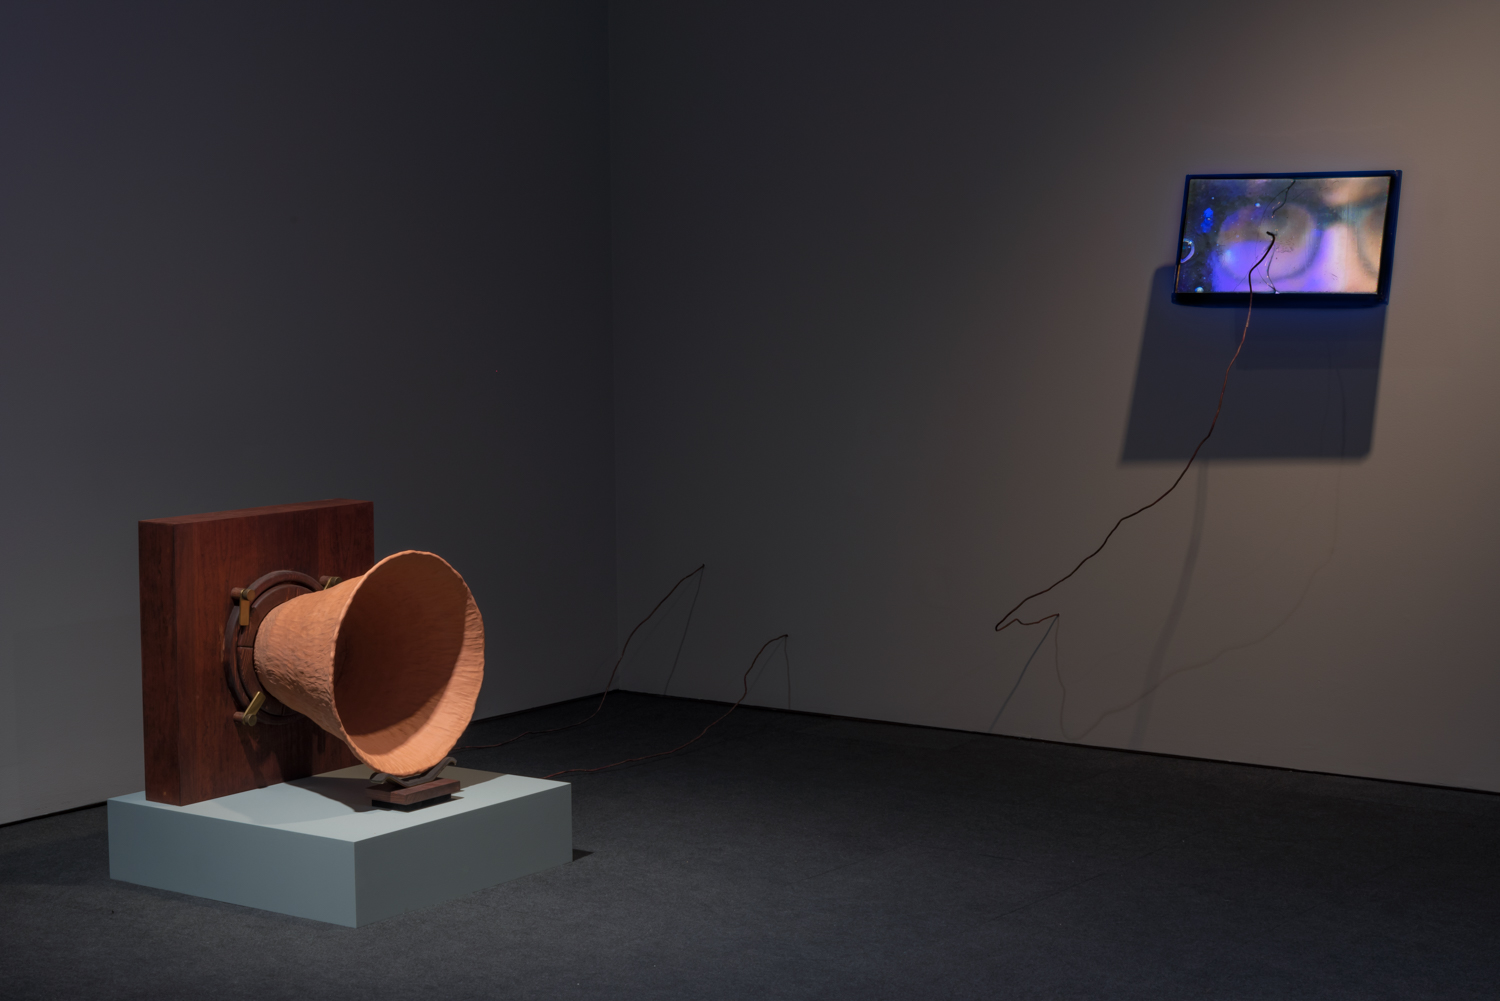 Conduct Matters, Hammer Project, Hammer Museum, Los Angeles. Visible:  Matter-phone , 2016, Terracotta, wood, metal, and copper wire, 25 x 24 x 21 inches, wire variable.;  Ground , 2017, hand-cast glass, copper wire, HD video (color, sound), and monitor with wall mount, 19 x12 monitor extending about 16 inches out from wall.